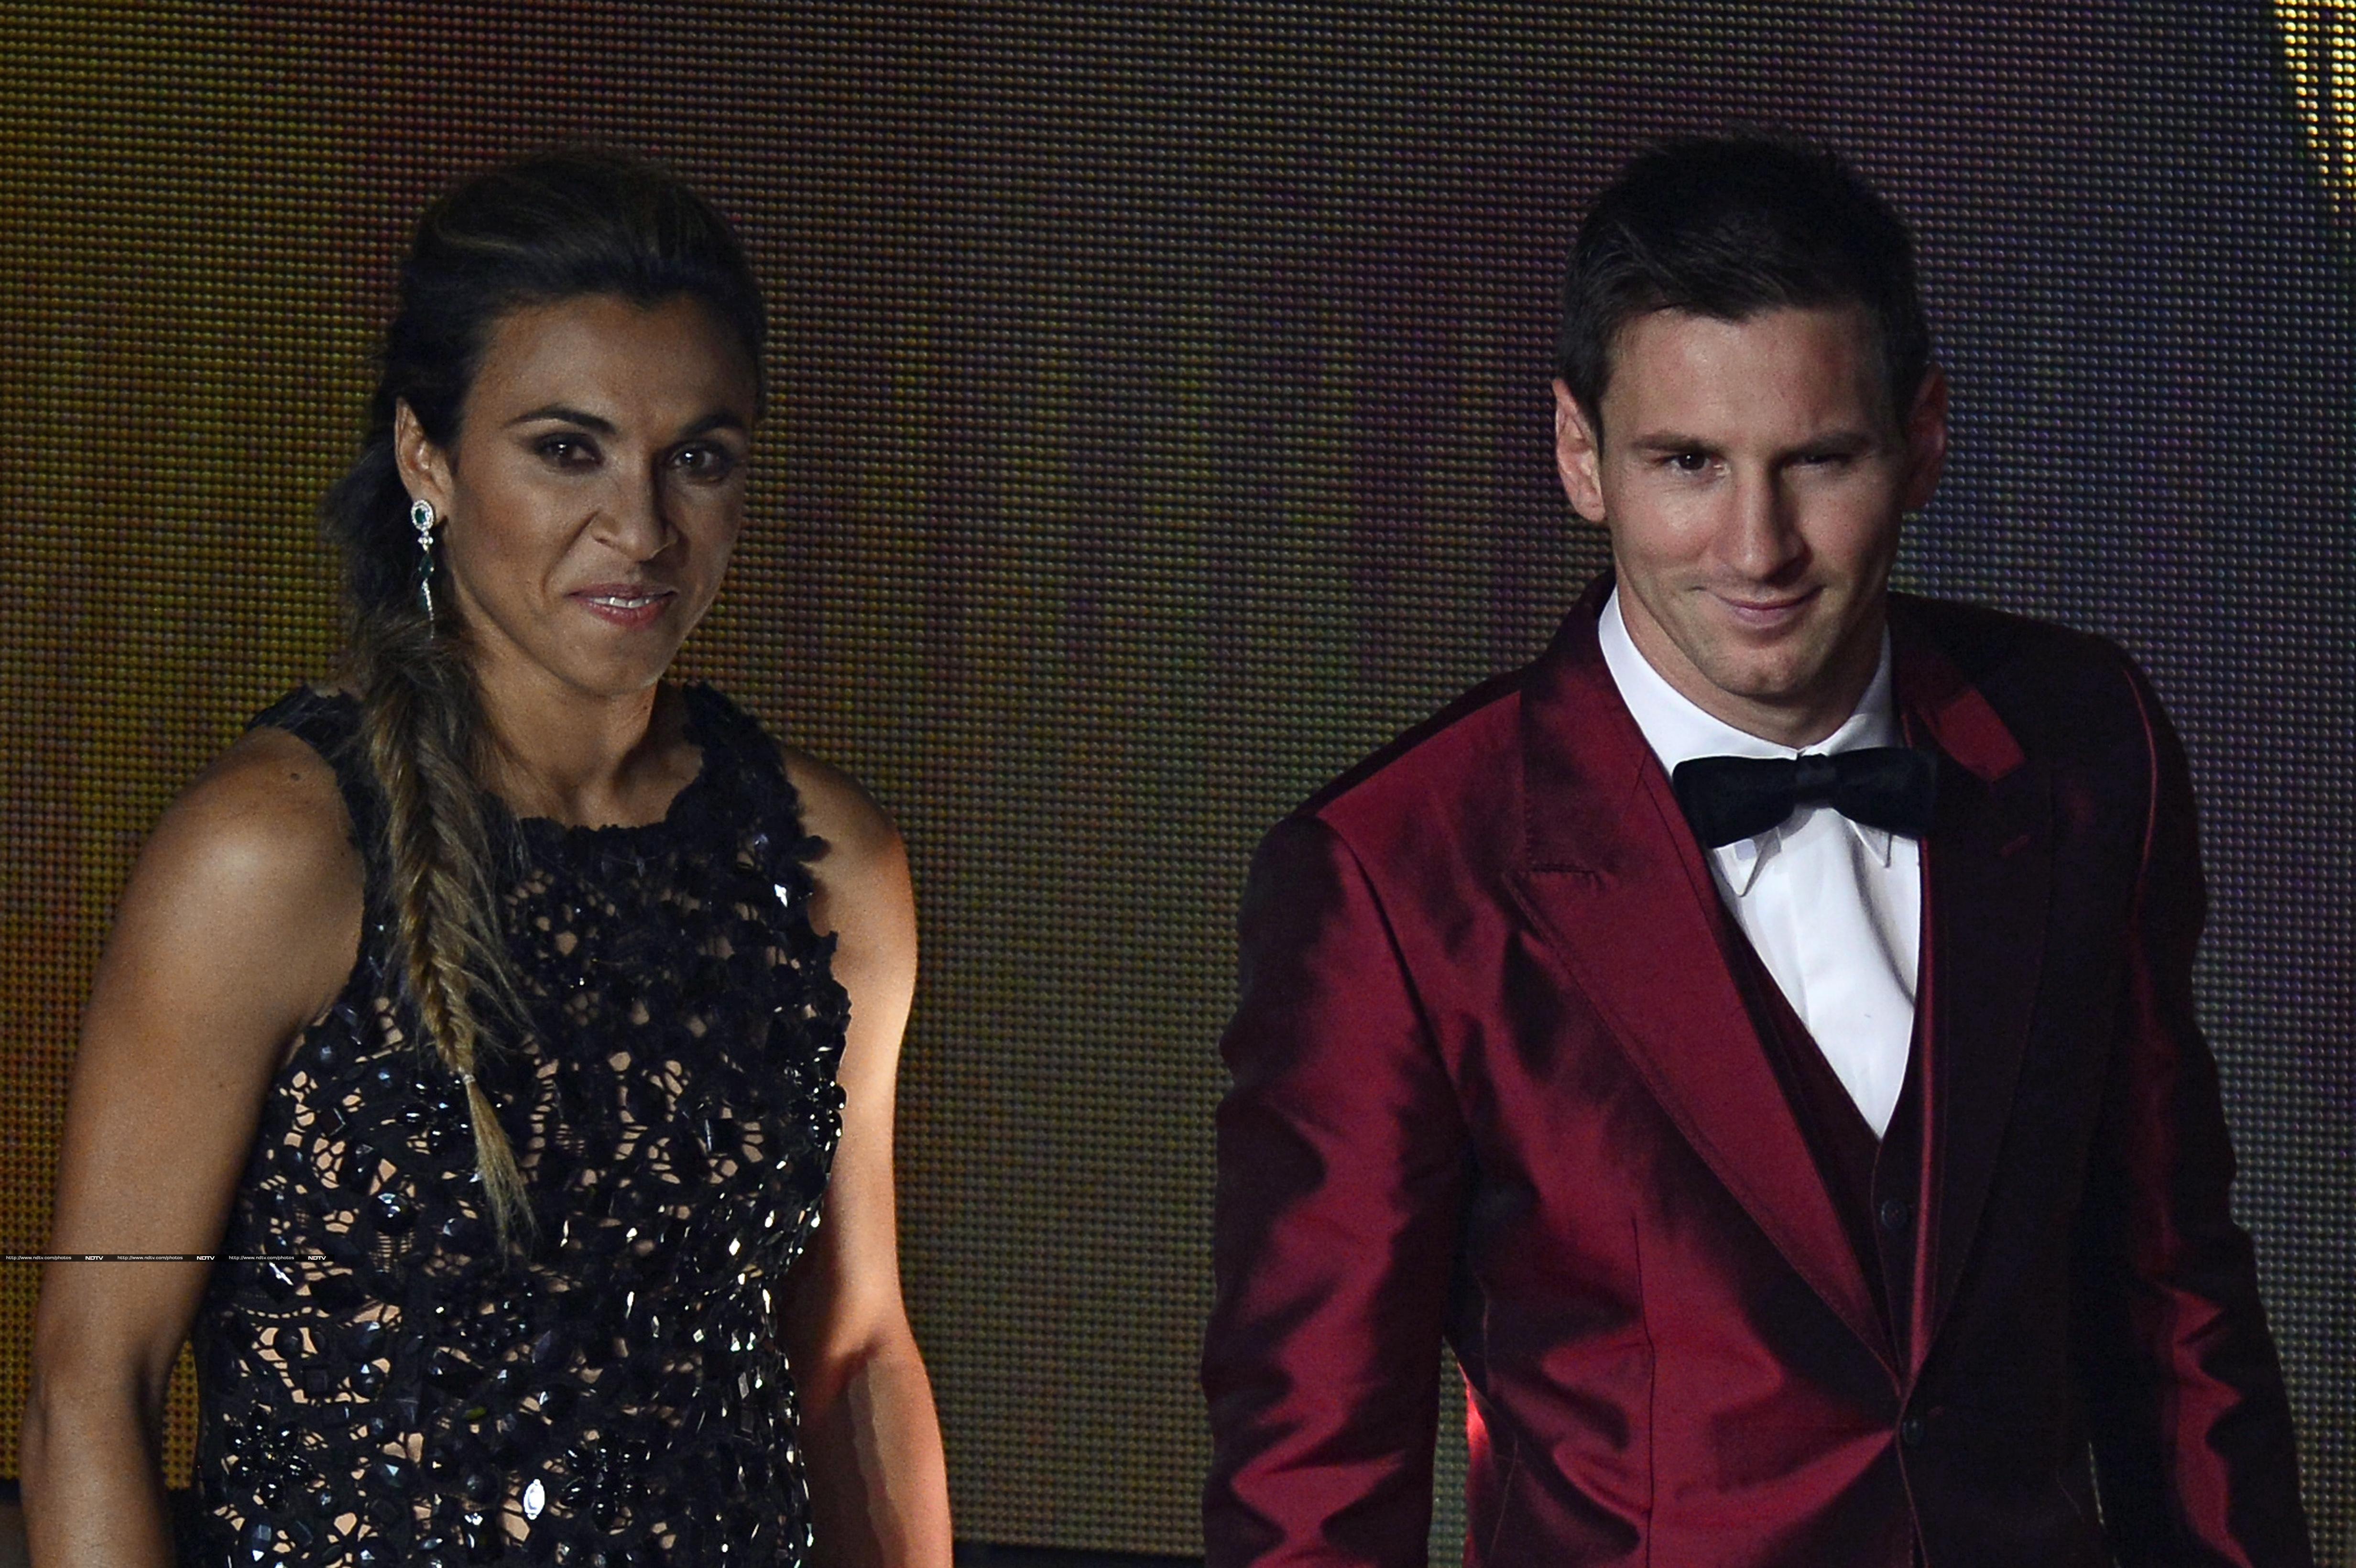 While every player and official on stage opted to don the 'mundane' blue or black suits, Messi chose to go for a bright red tuxedo. (AP and AFP photos)